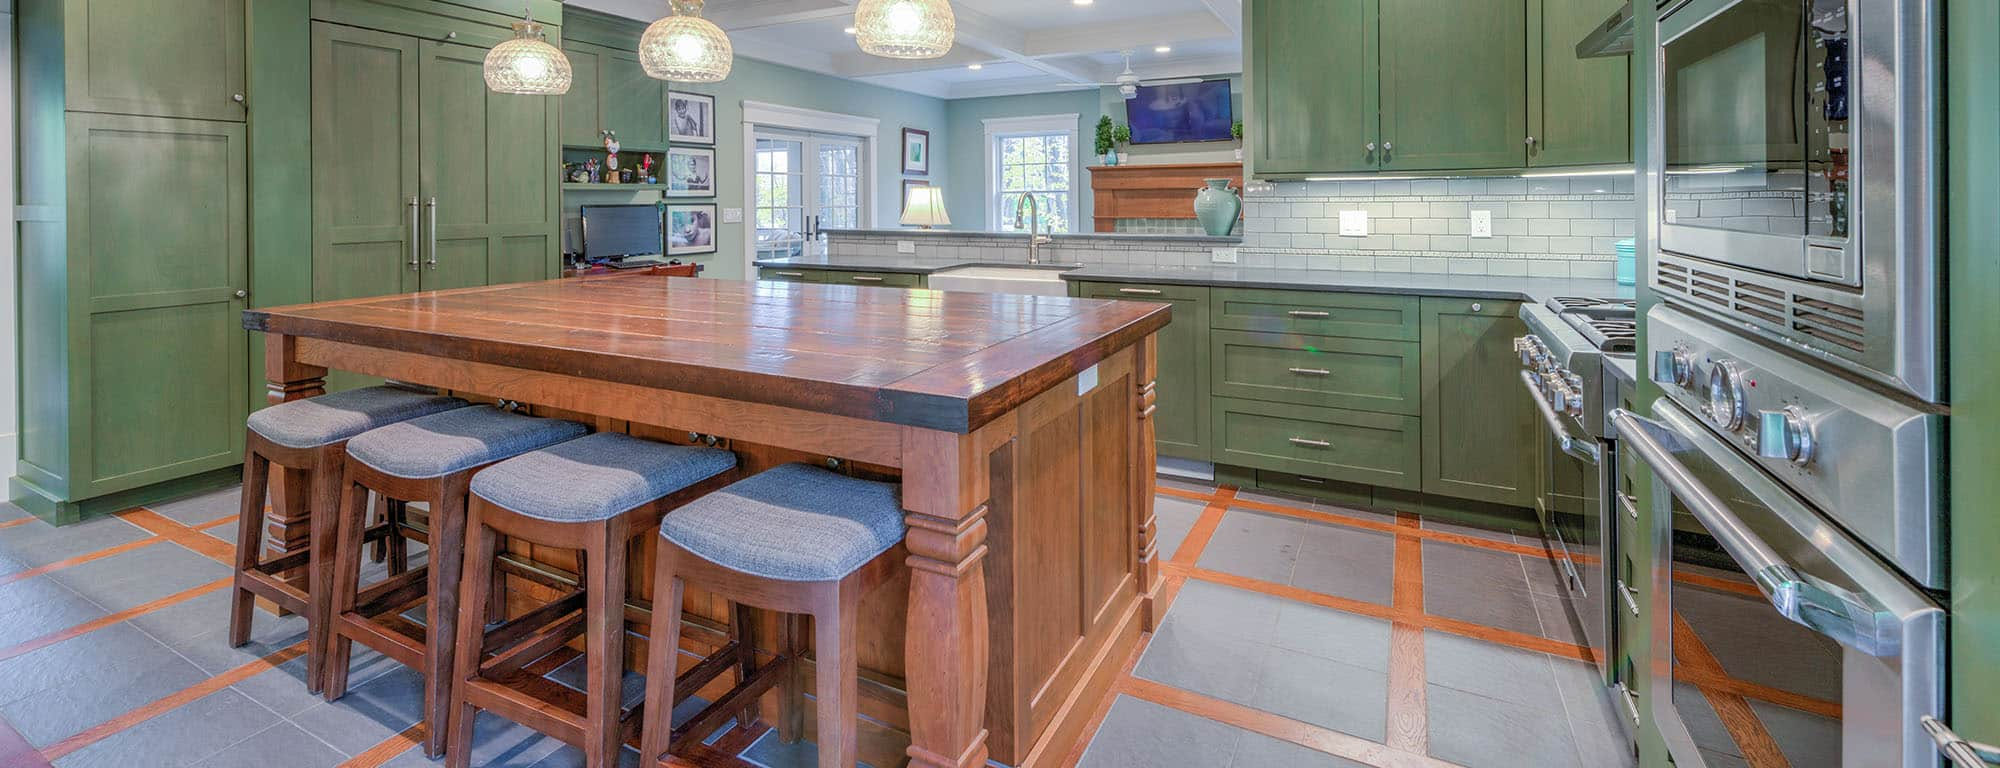 Home Remodeling Architect For New Jersey